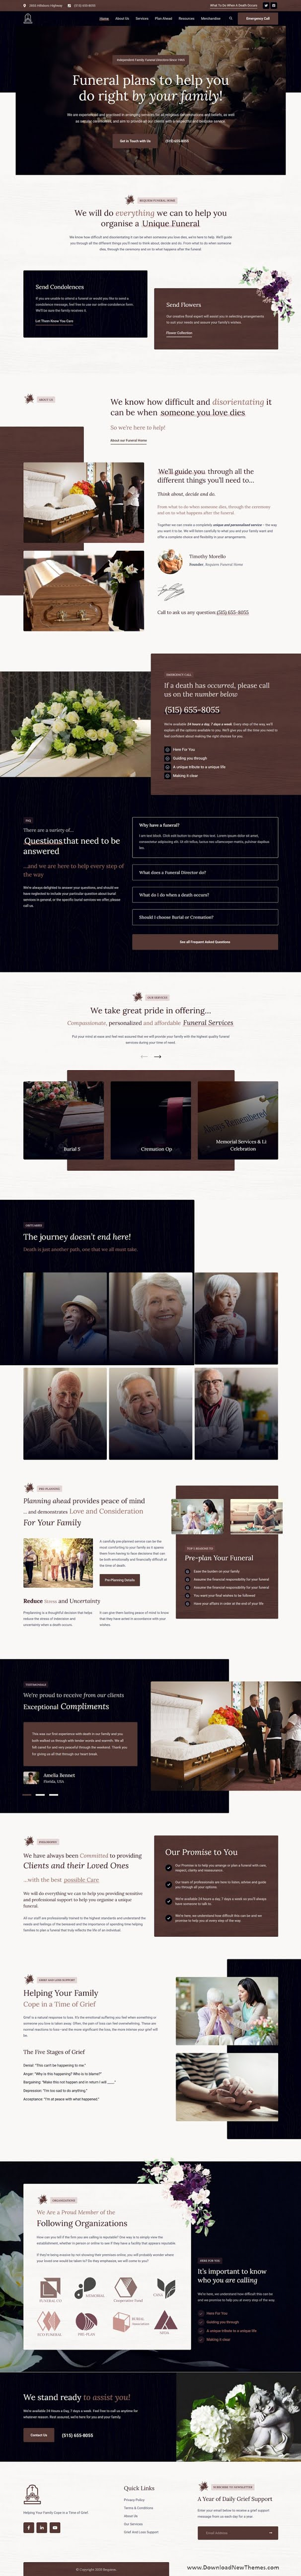 Funeral Home Services Website Theme